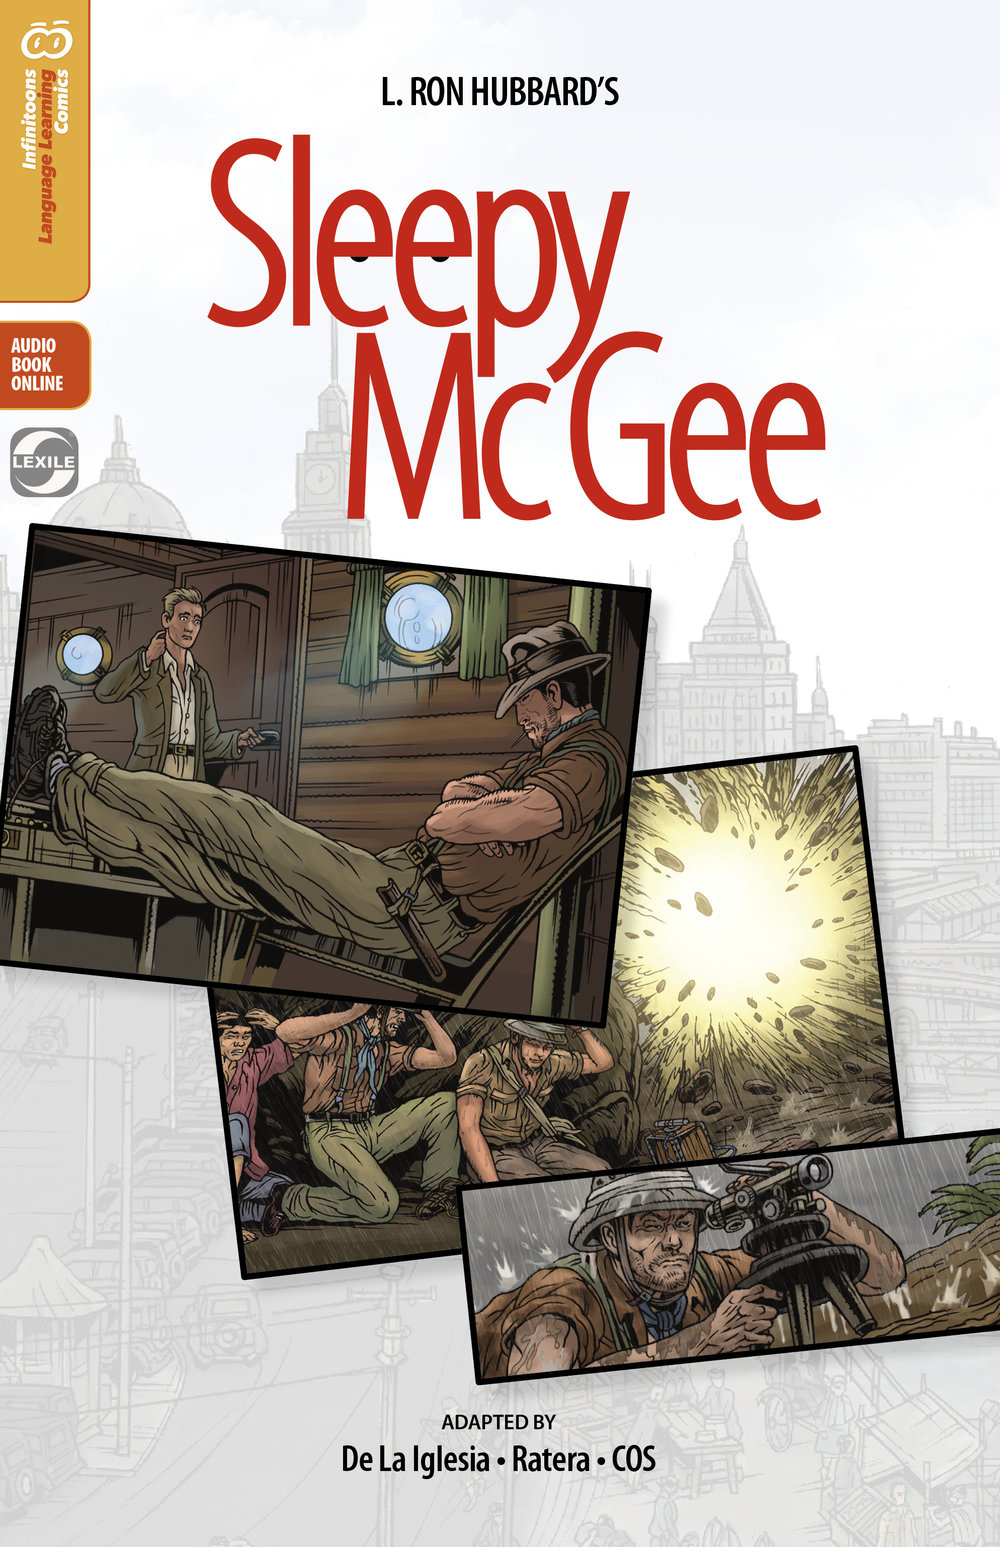 171130 Sleepy McGee cover and interior-AHv3-171207-cover.jpg